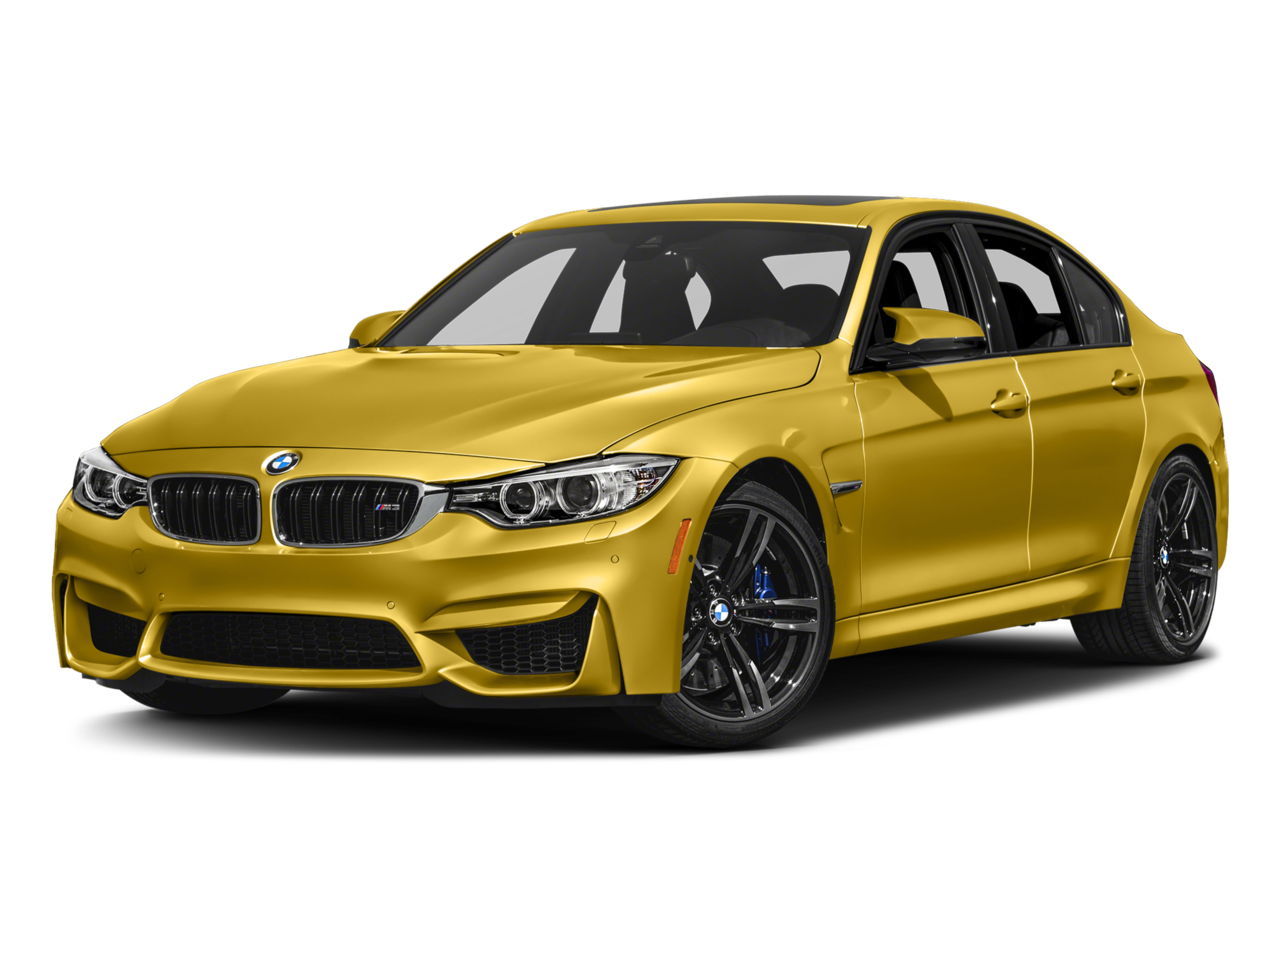 2017 BMW M3 in Bowling Green, KY